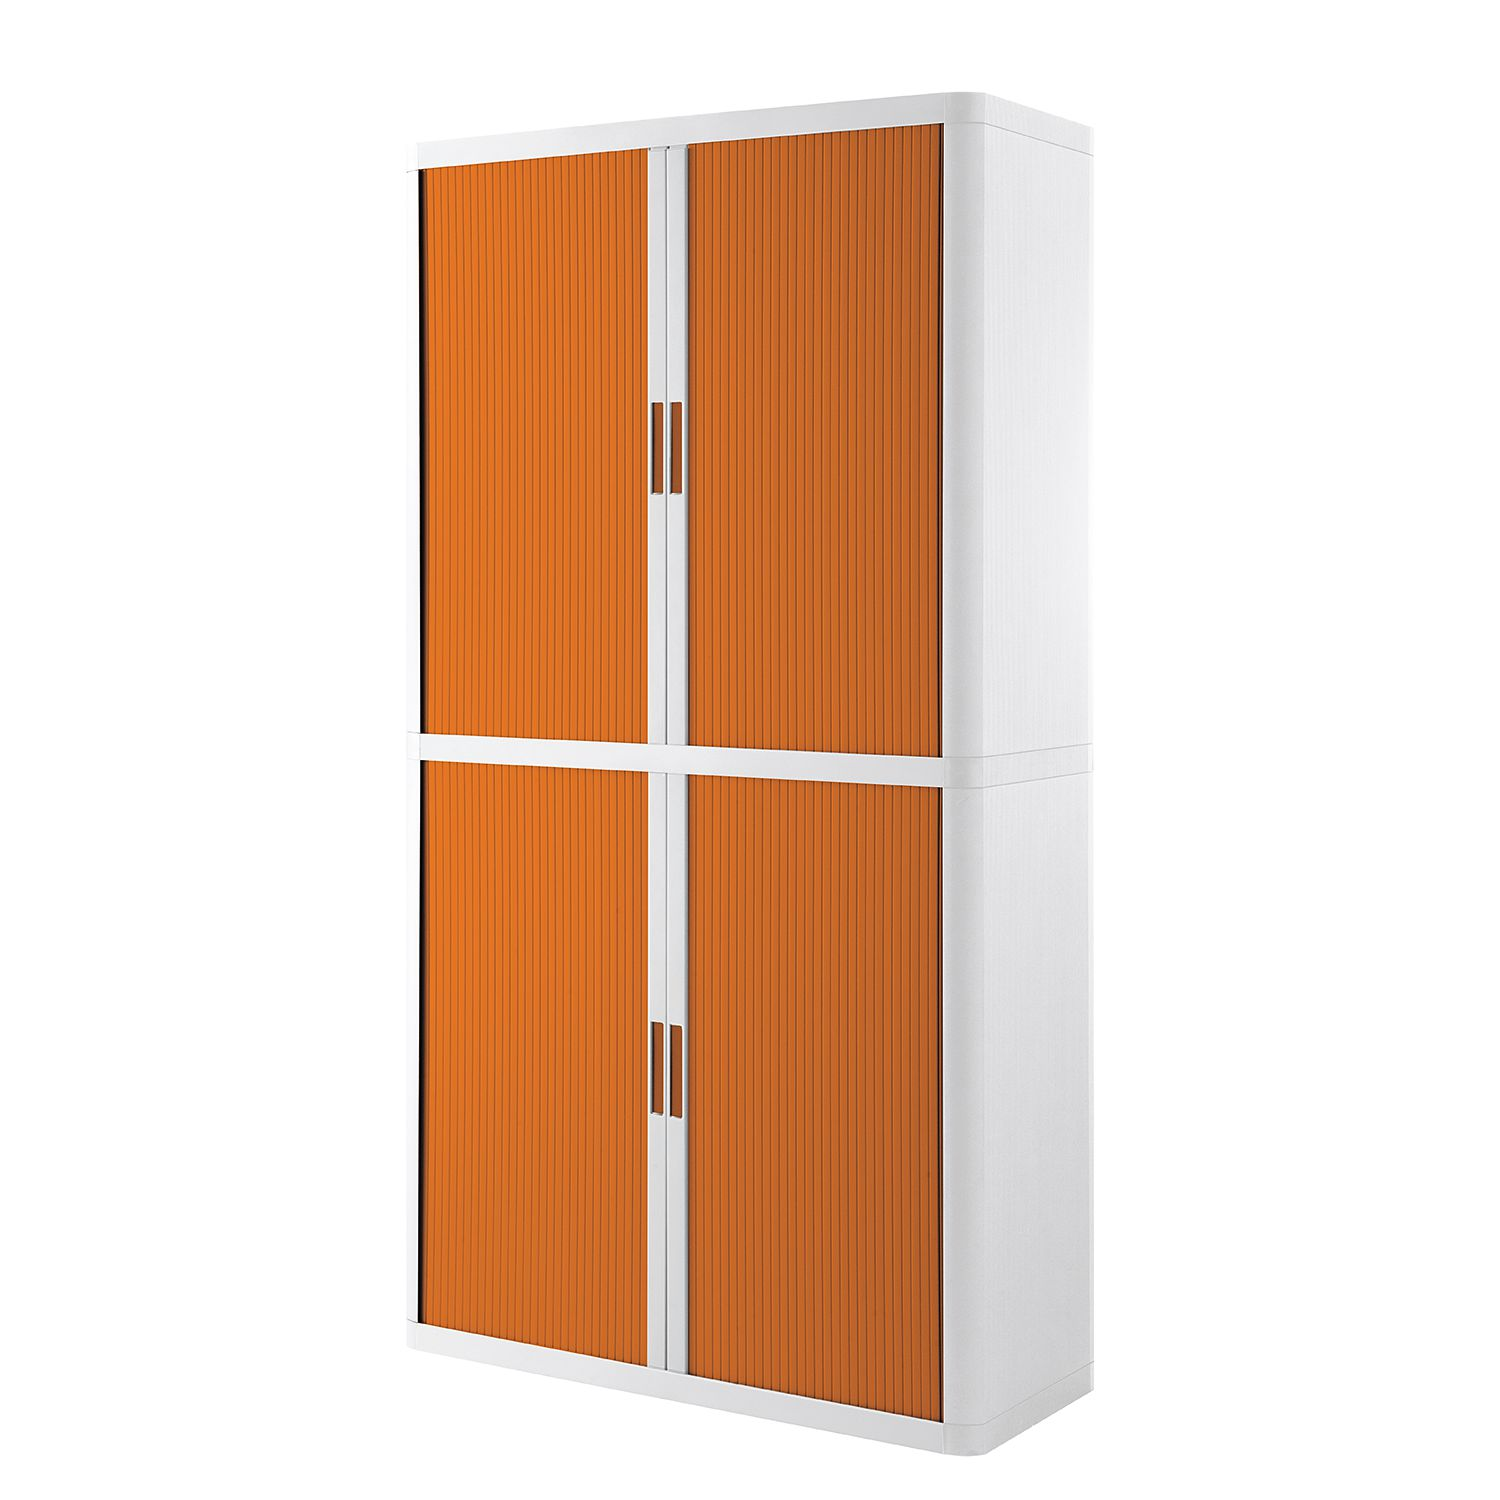 Dossierkast easyOffice - Wit/oranje - 204cm, easy Office und Paperflow